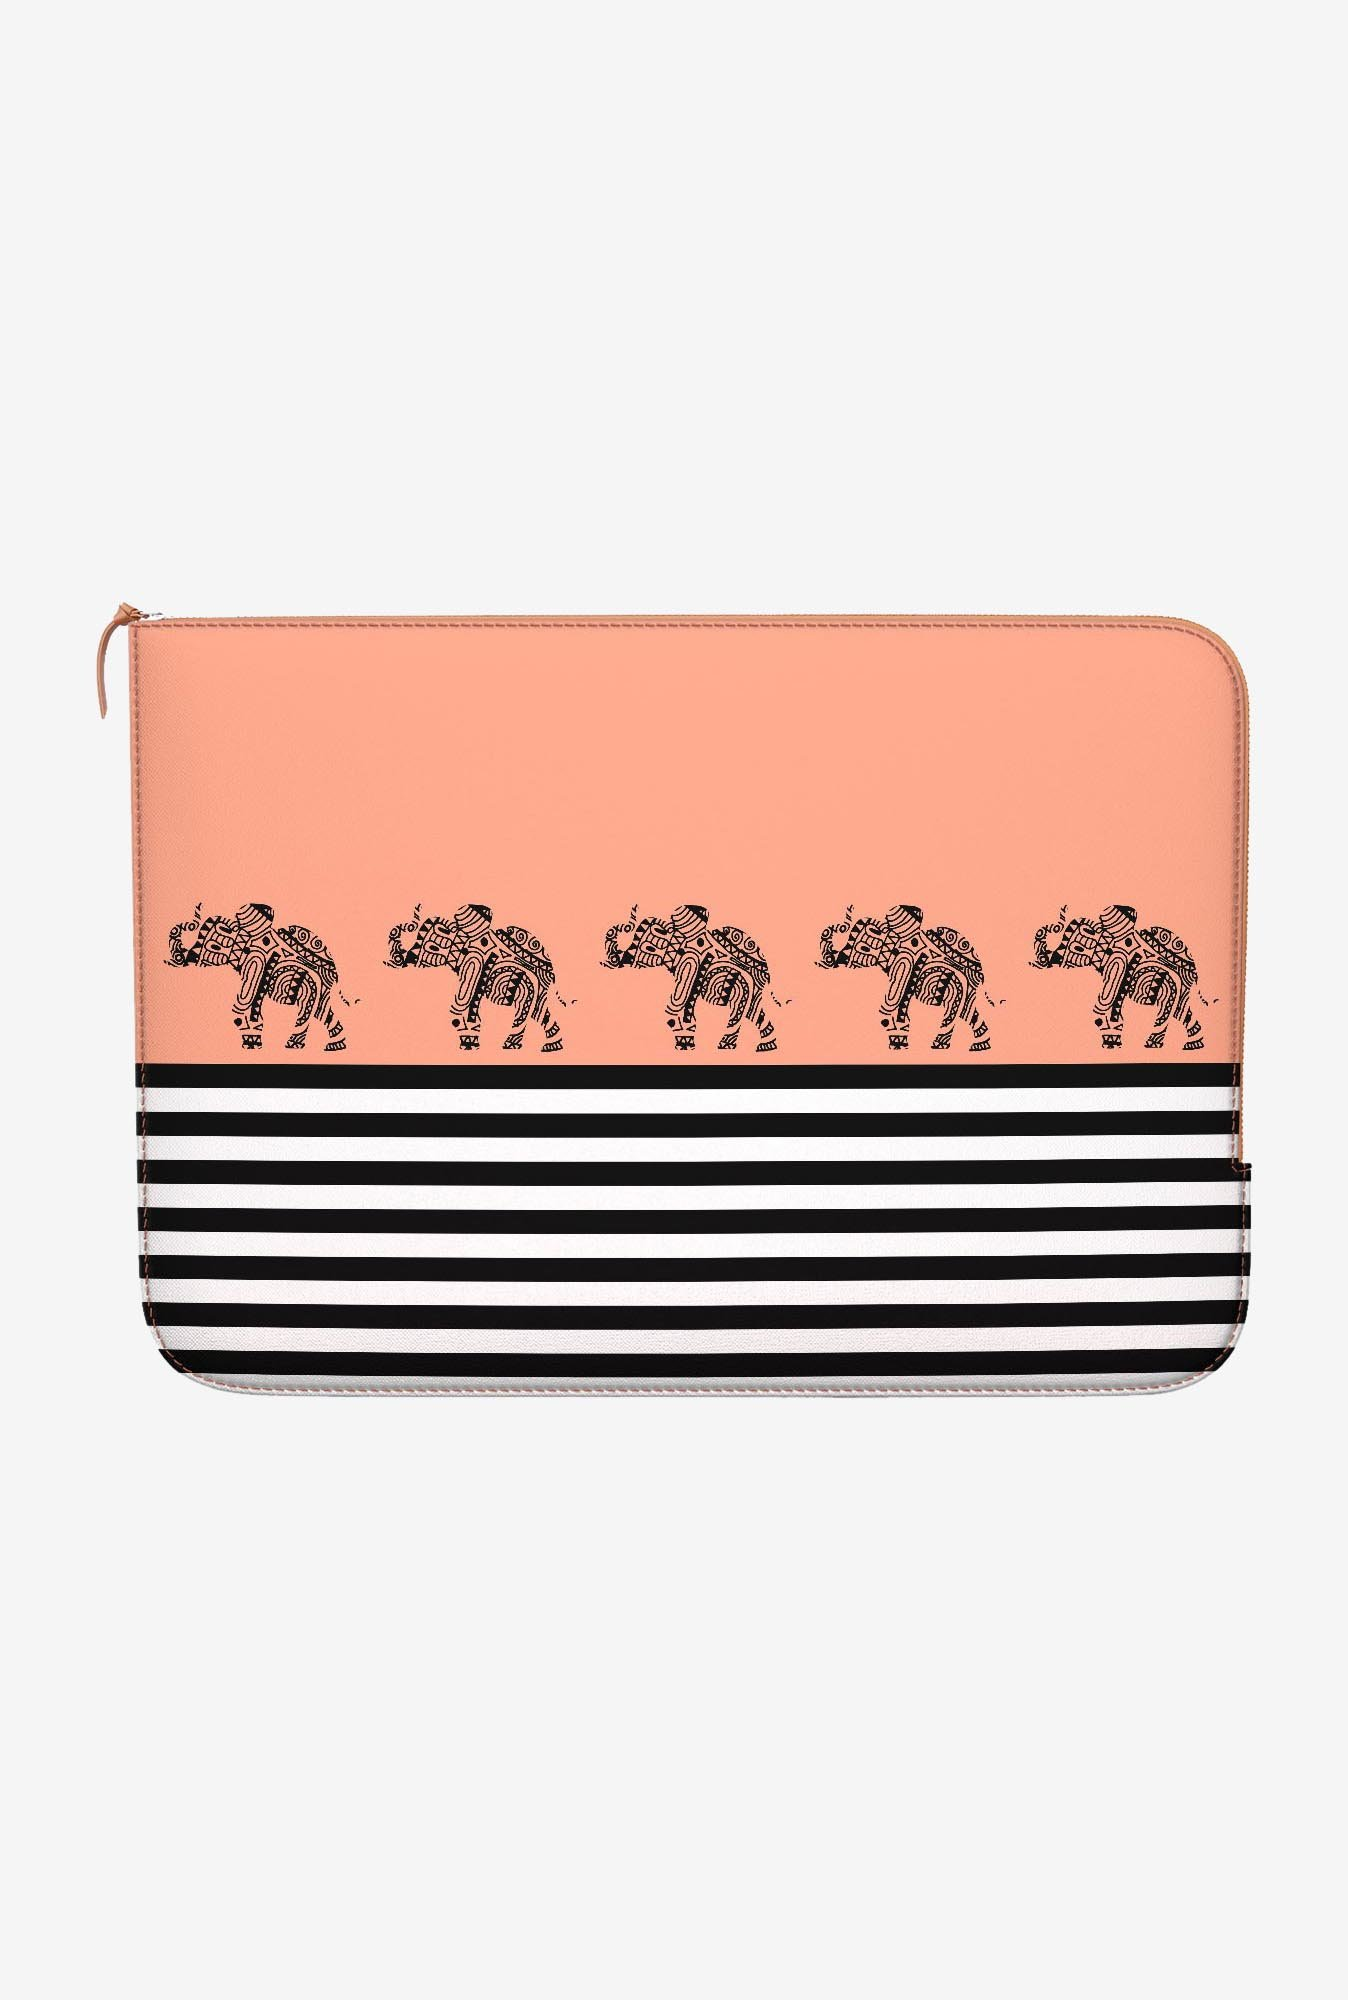 DailyObjects Stripes Coral MacBook Pro 15 Zippered Sleeve